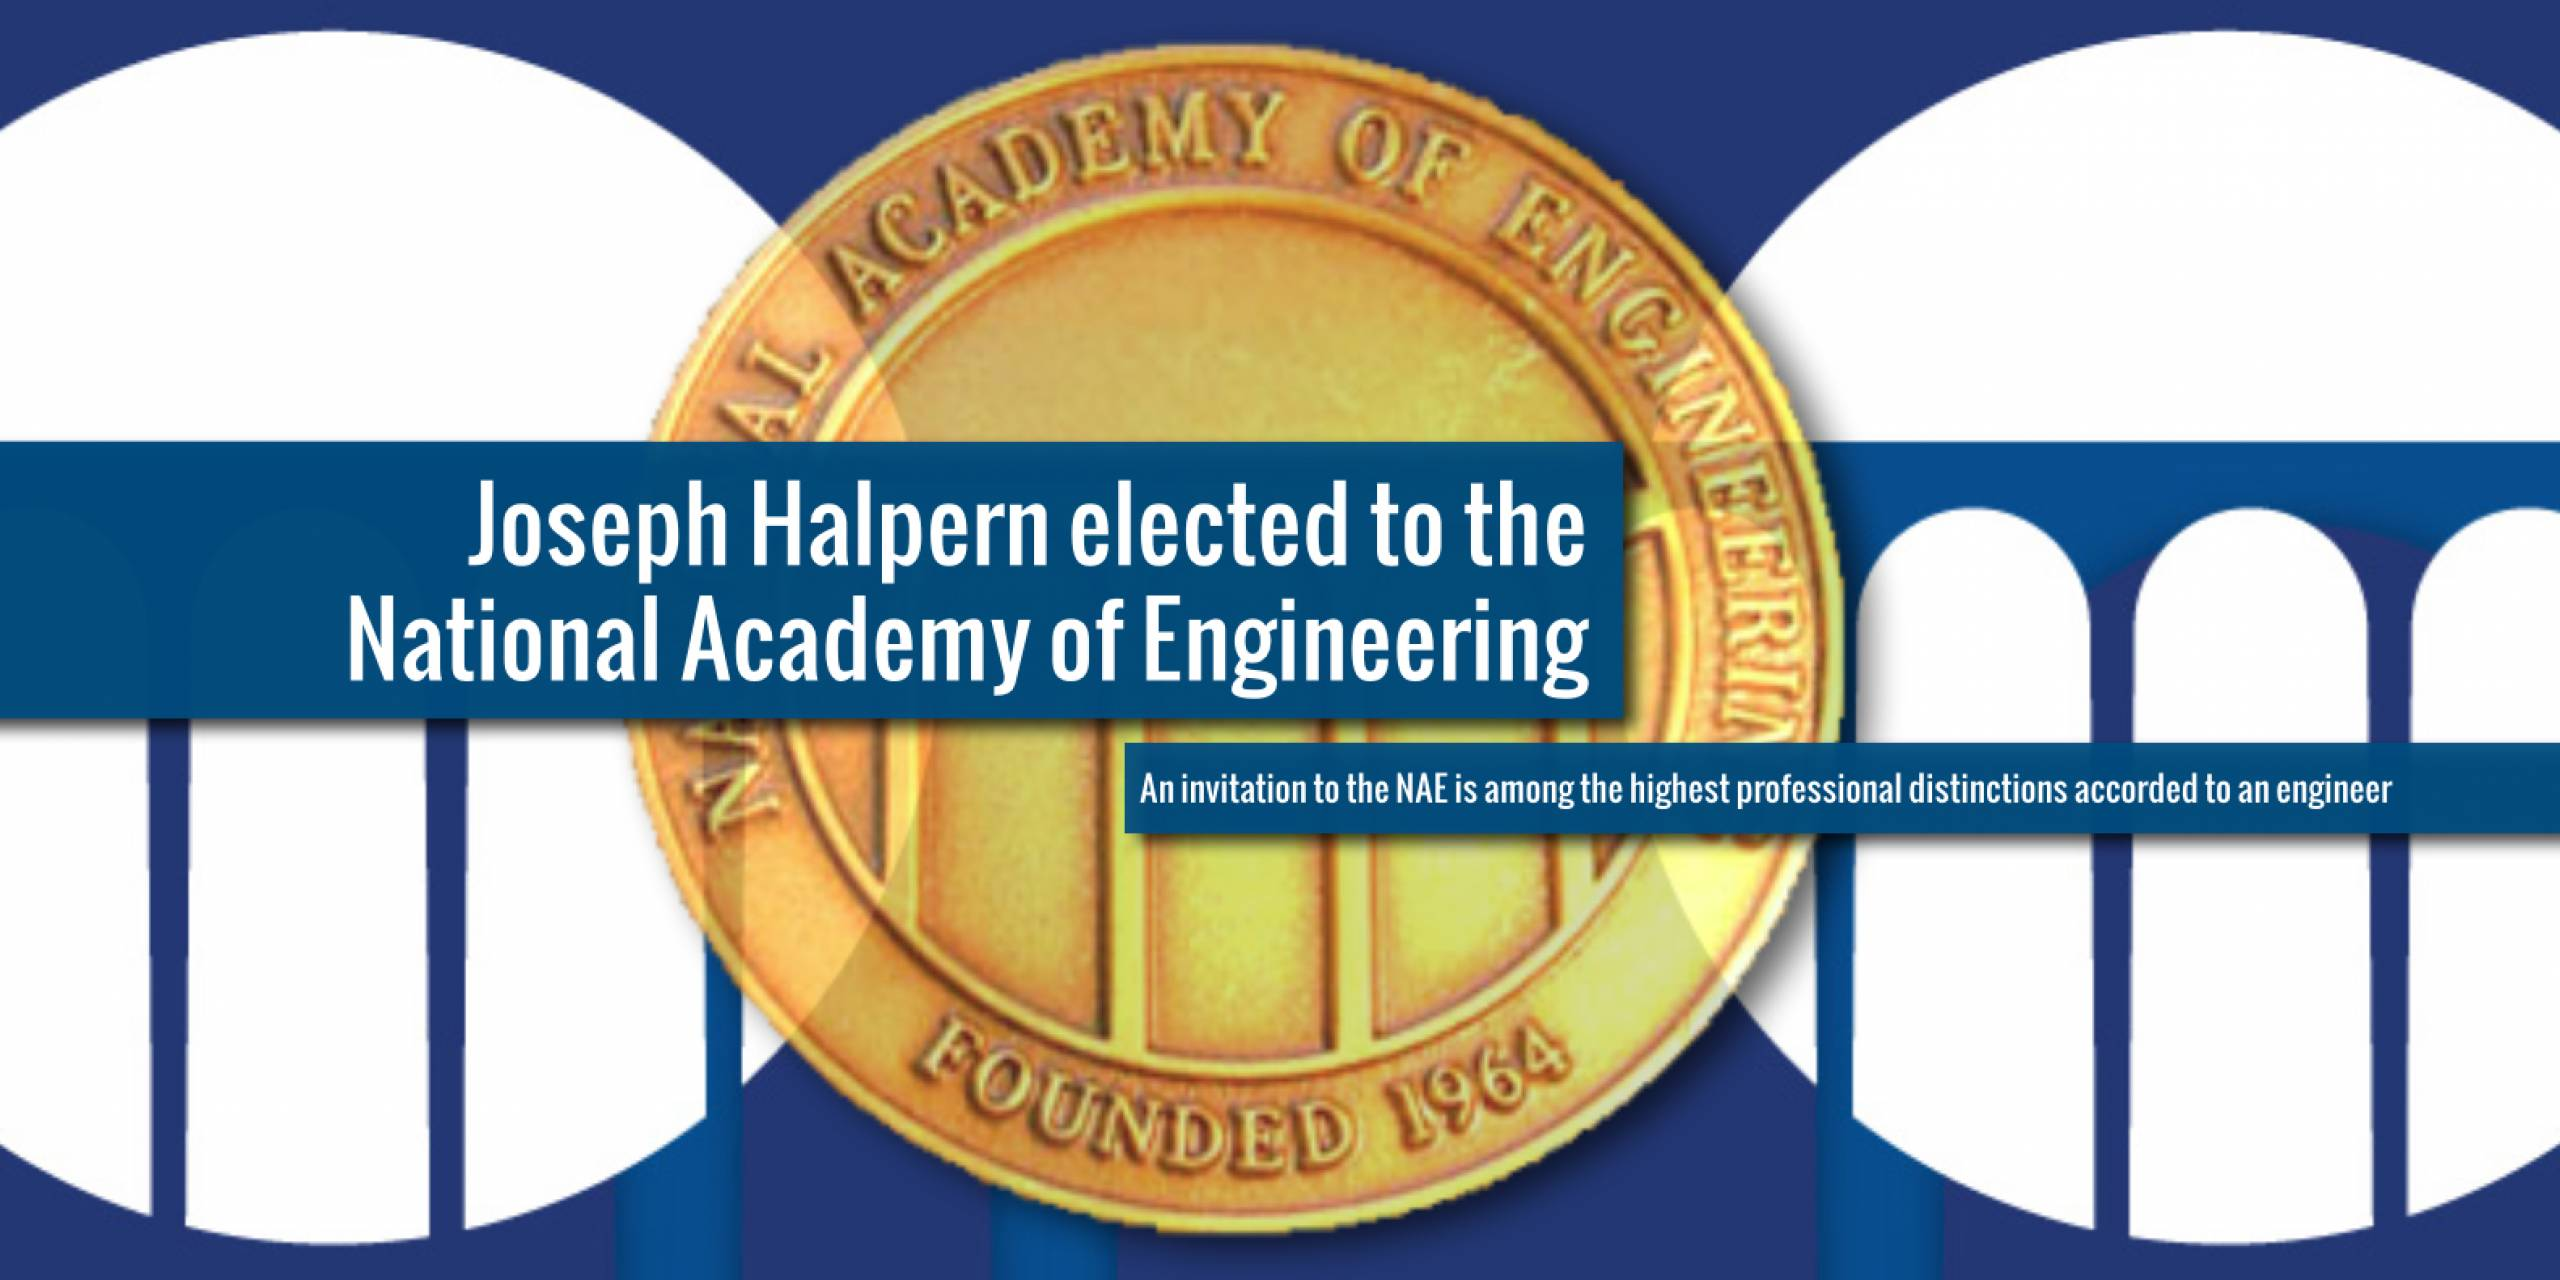 Joseph Halpern elected to the National Academy of Engineering